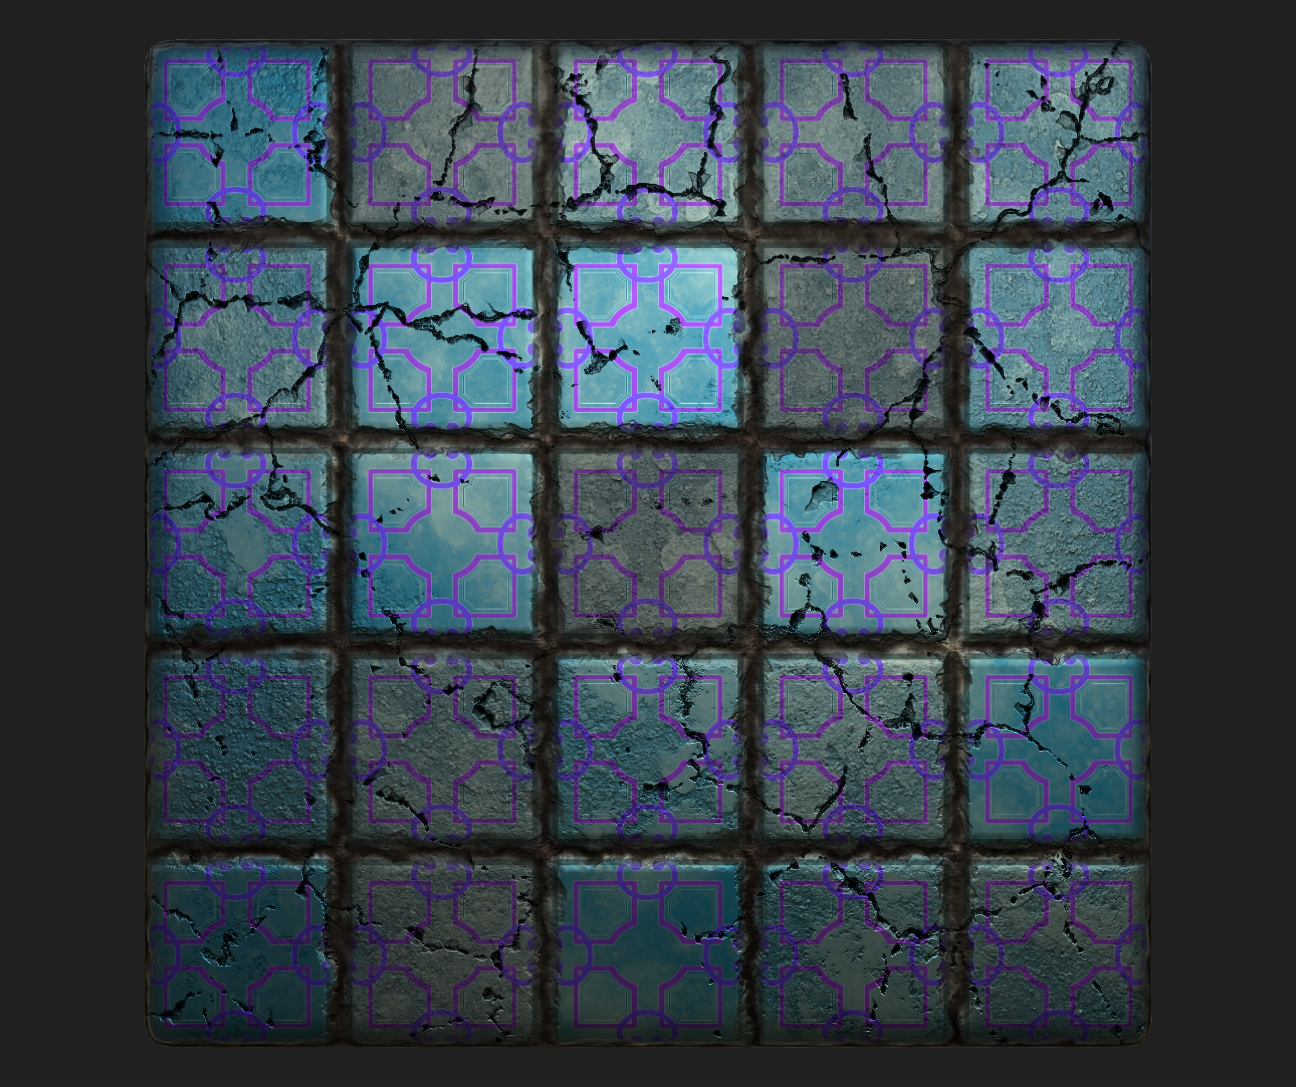 Tile_14_Pattern_08.png